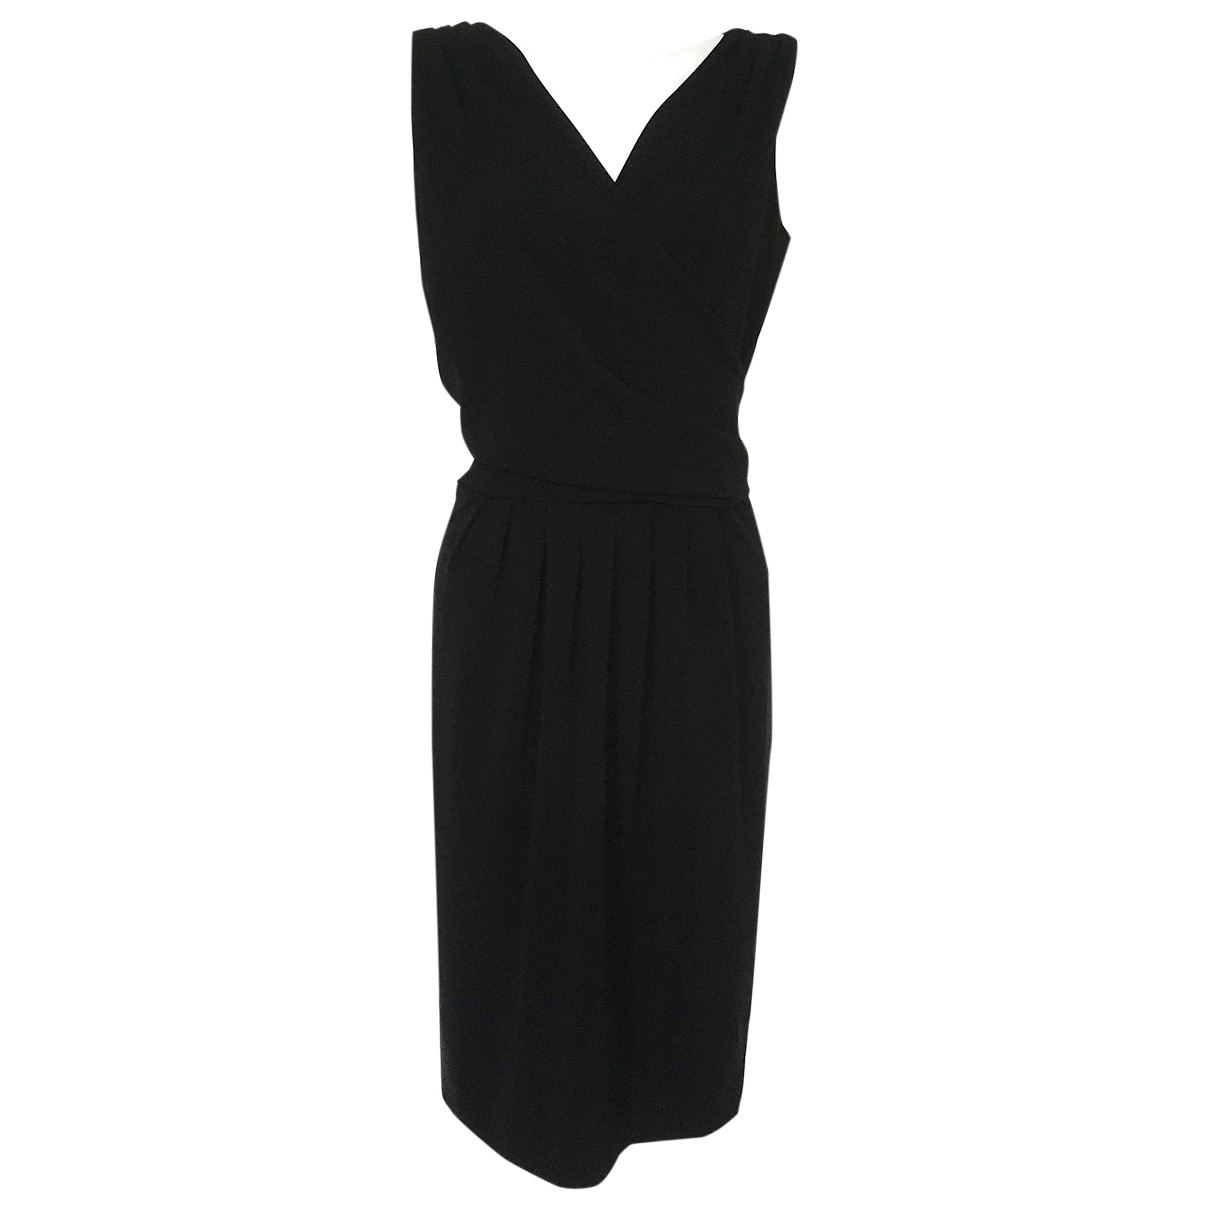 Moschino Cheap And Chic \N Black dress for Women 44 FR